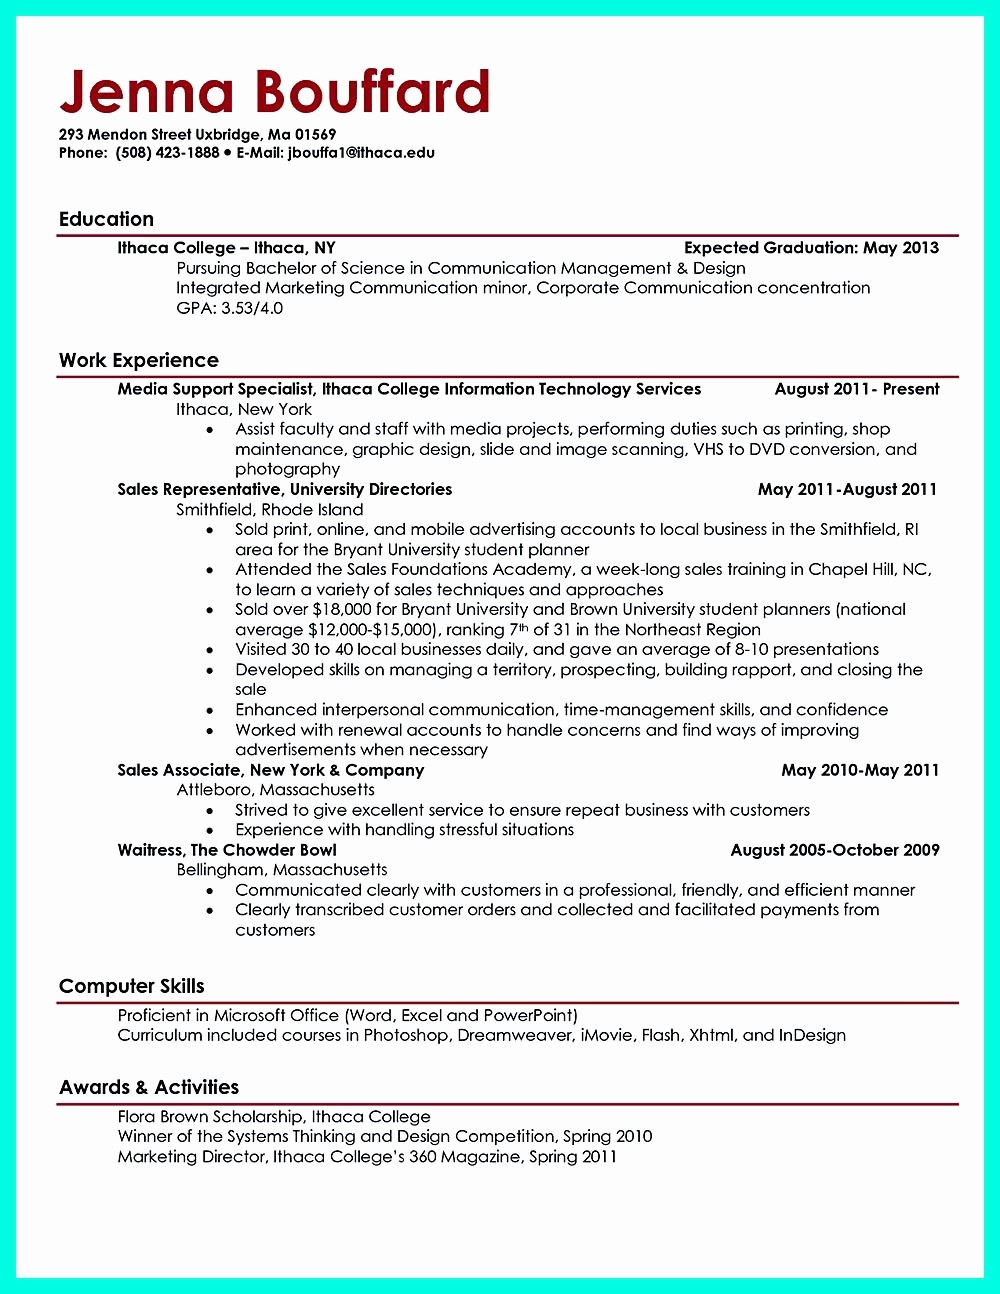 Sample Resume for College Graduate Best Of Current College Student Resume is Designed for Fresh